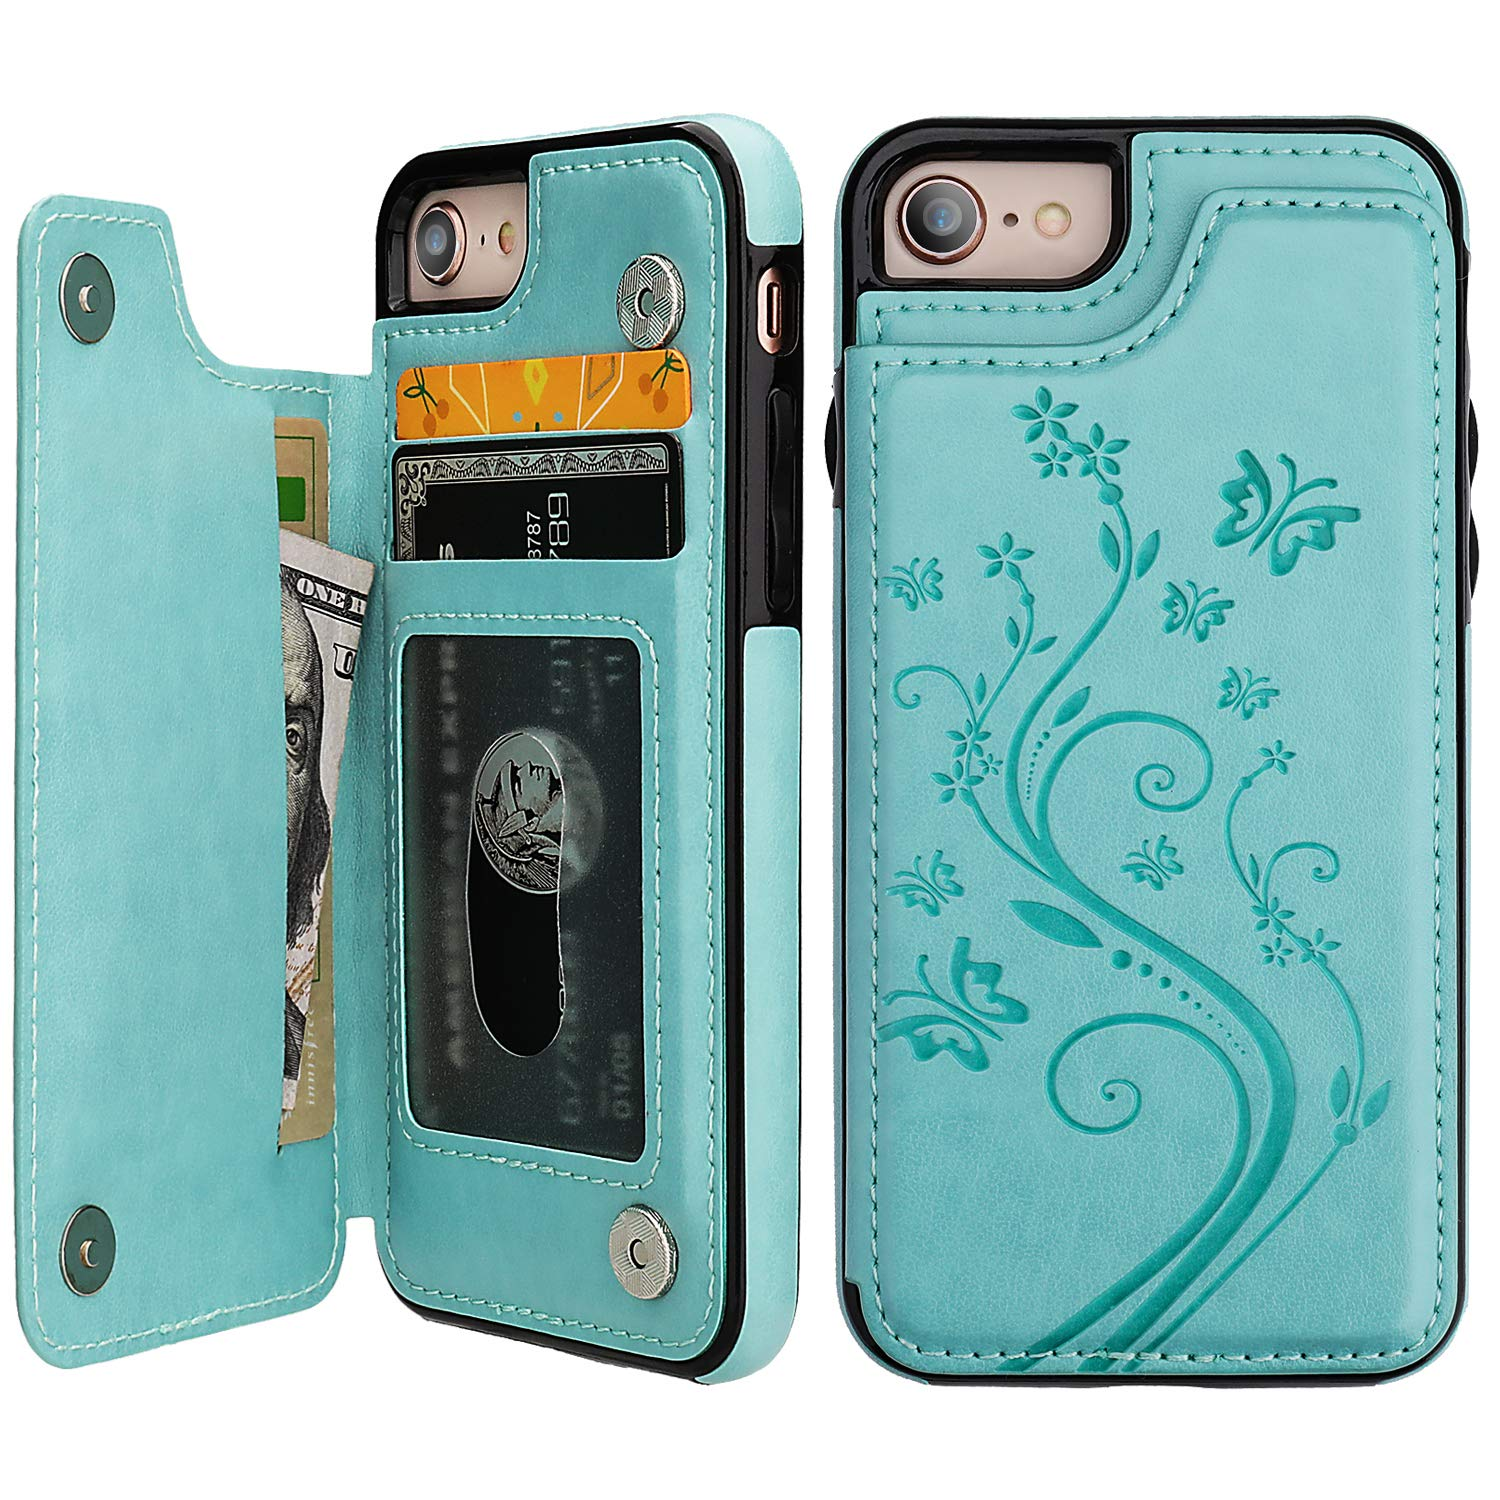 iPhone 7 iPhone 8 iPhone SE 2020 Case Wallet with Card Holder, Vaburs Embossed Butterfly Premium PU Leather Double Magnetic Buttons Flip Shockproof Protective Cover for iPhone 7/8/SE 2020 (Mint Green)